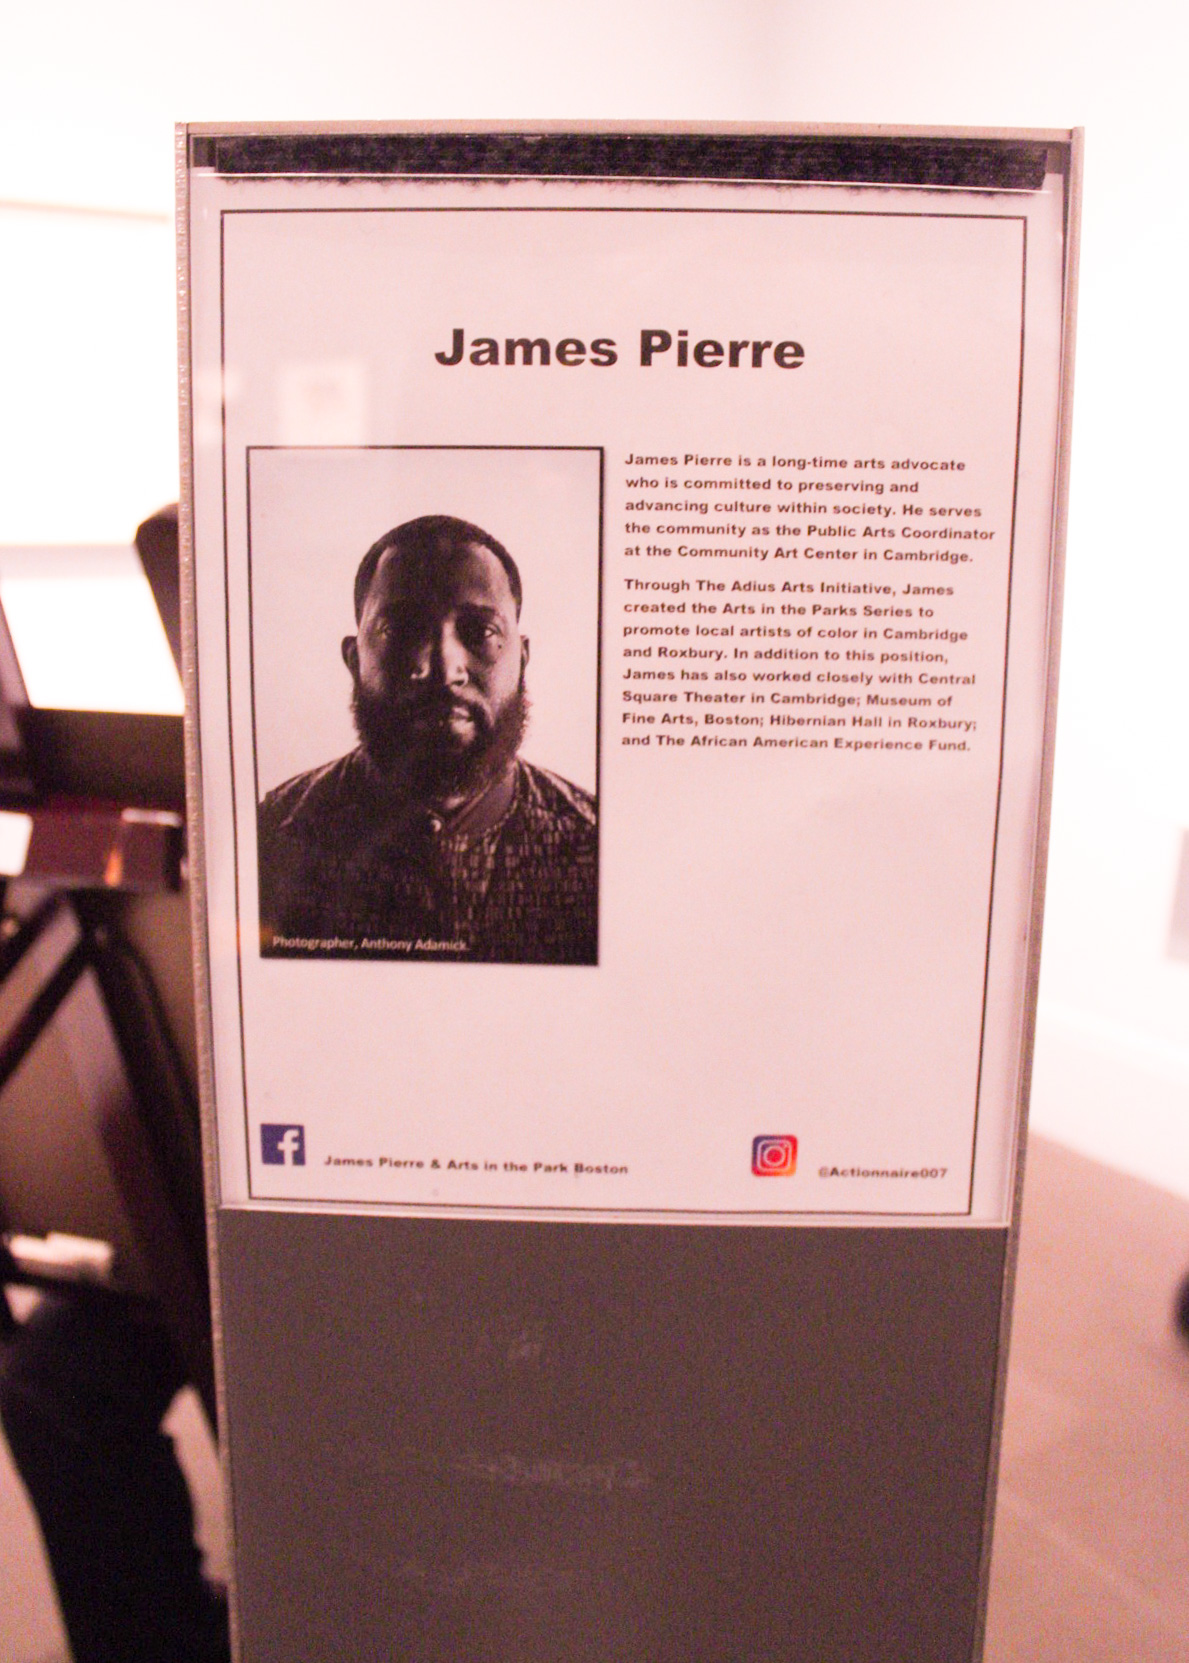 A profile on James Pierre, one of the featured artists.